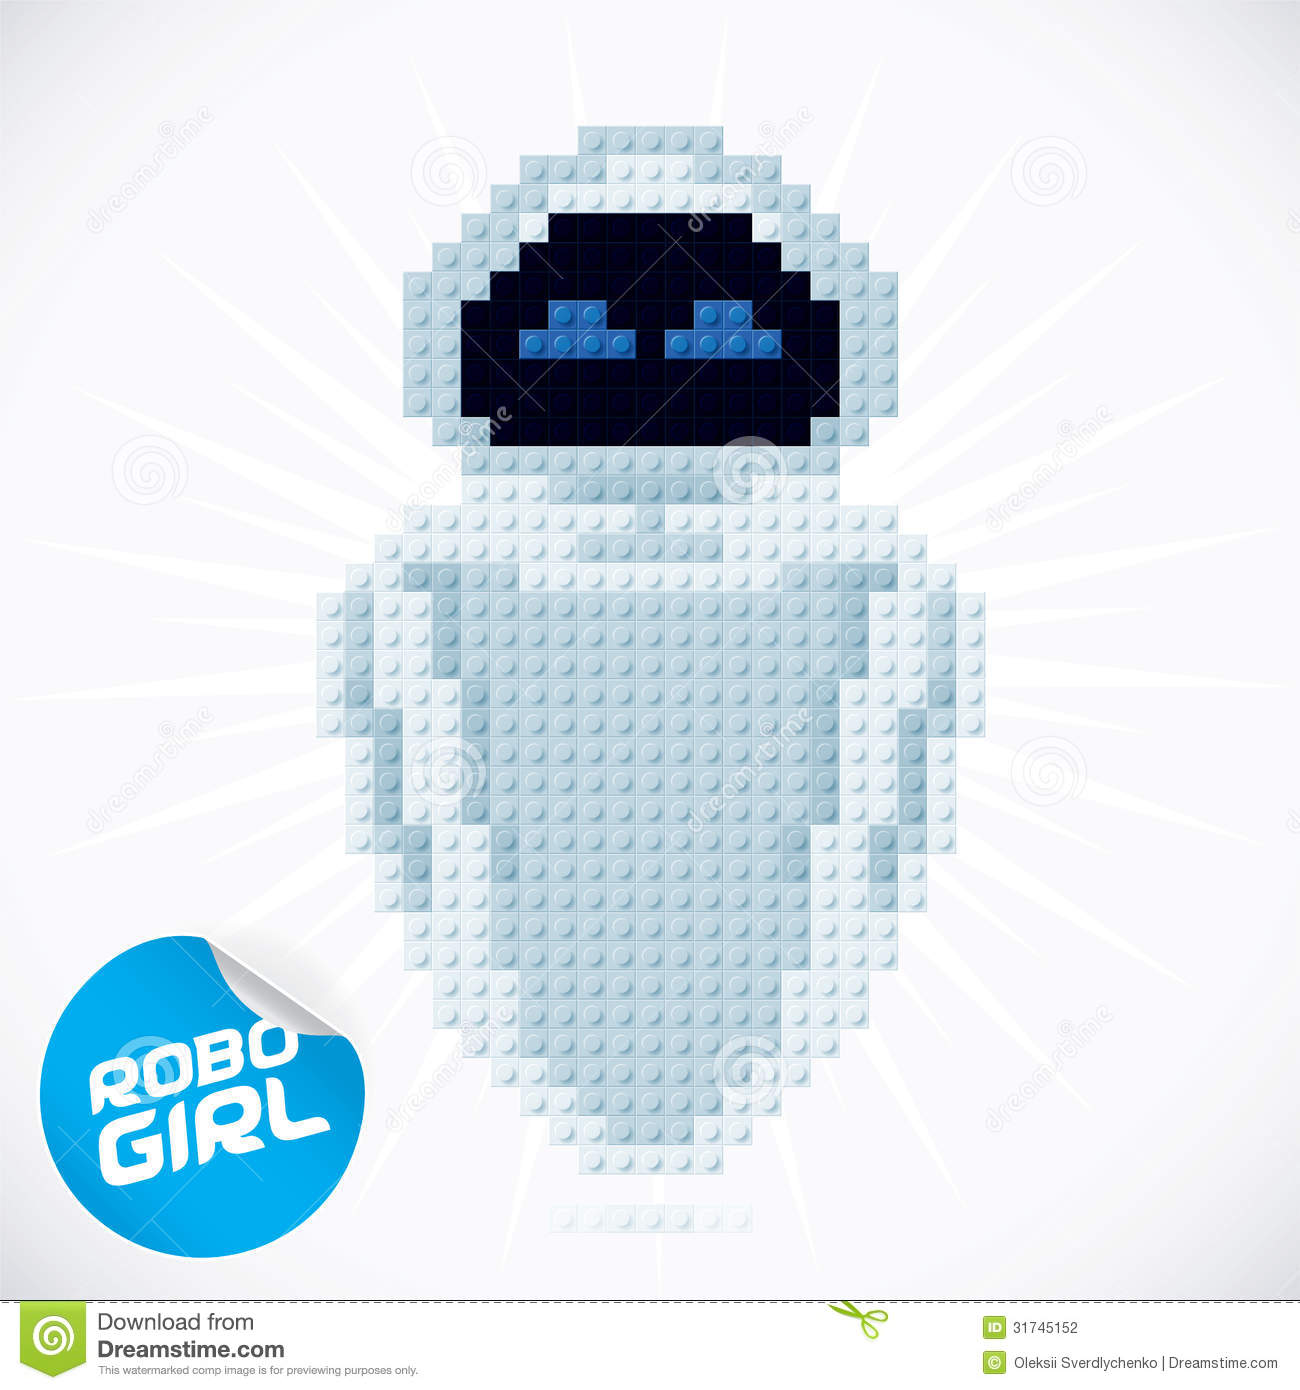 Robot Wall Sticker Block Robogirl Illustration Stock Photography Image